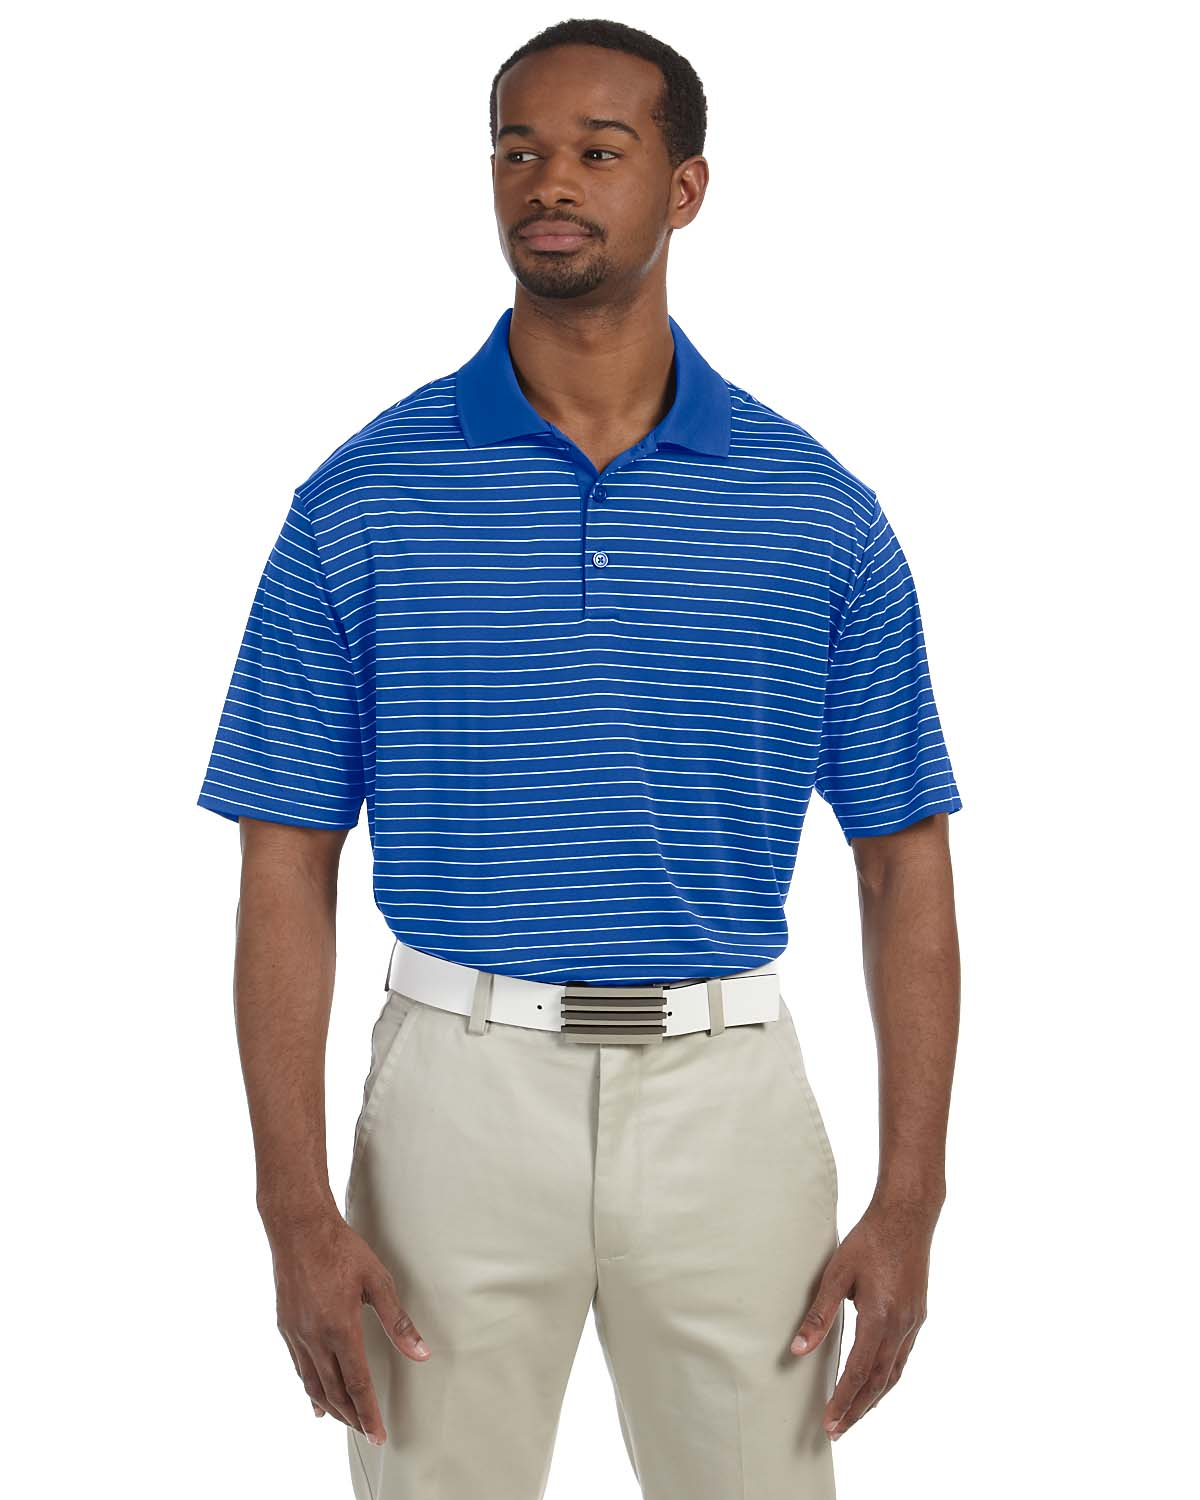 Adidas Golf Mens Climalite® Pencil Stripe Polo